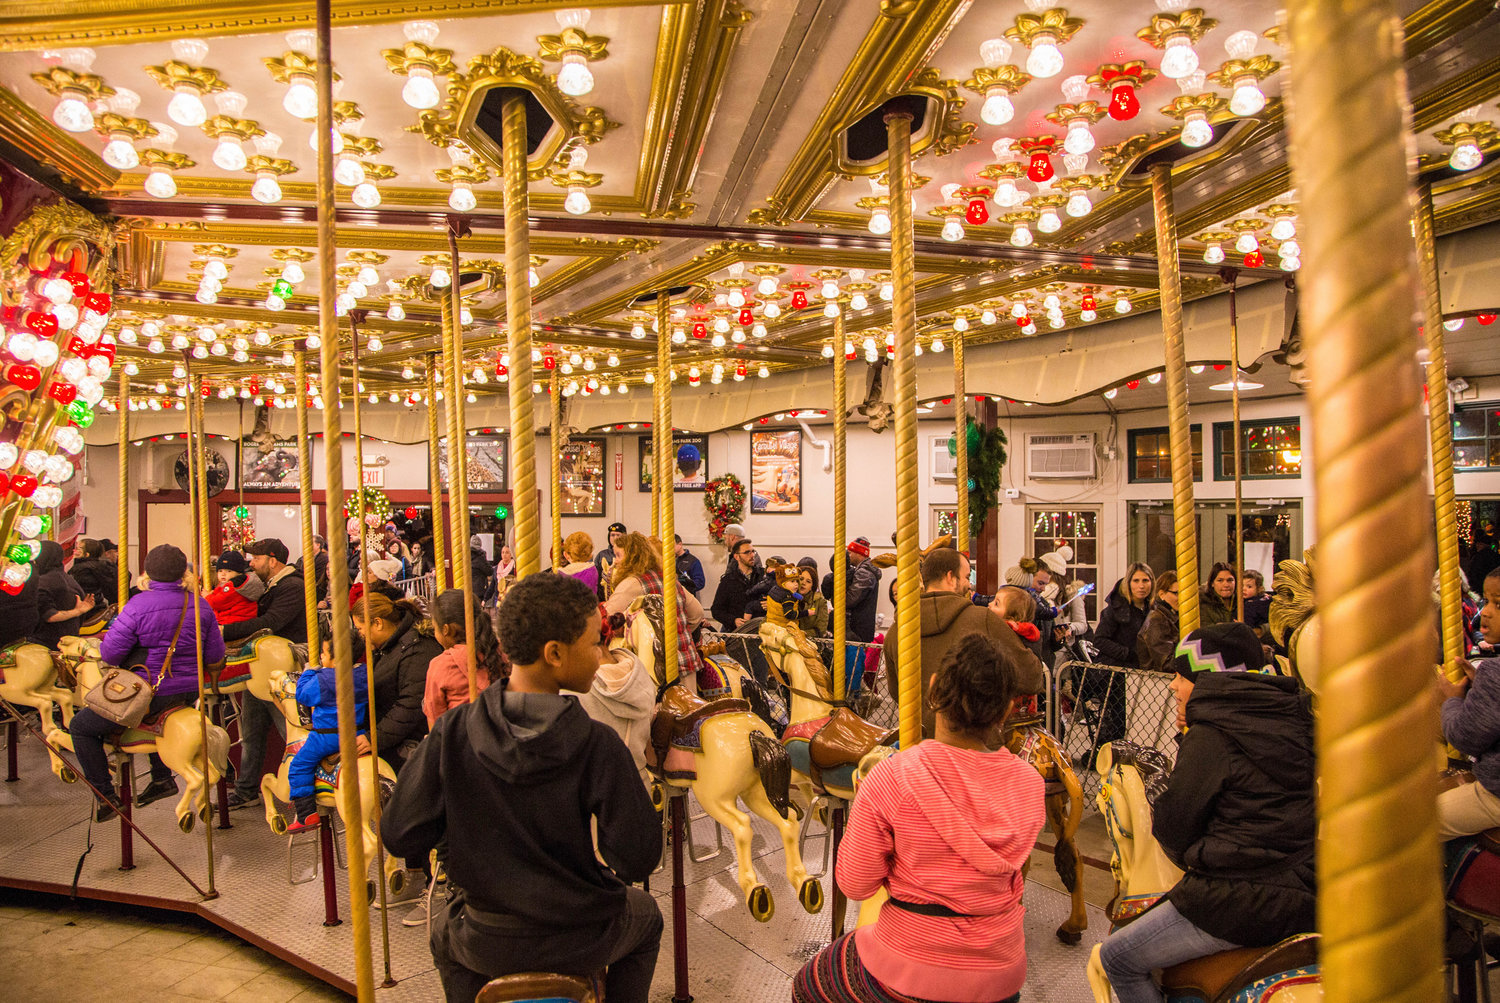 The Roger Williams Park Carousel all decked out 